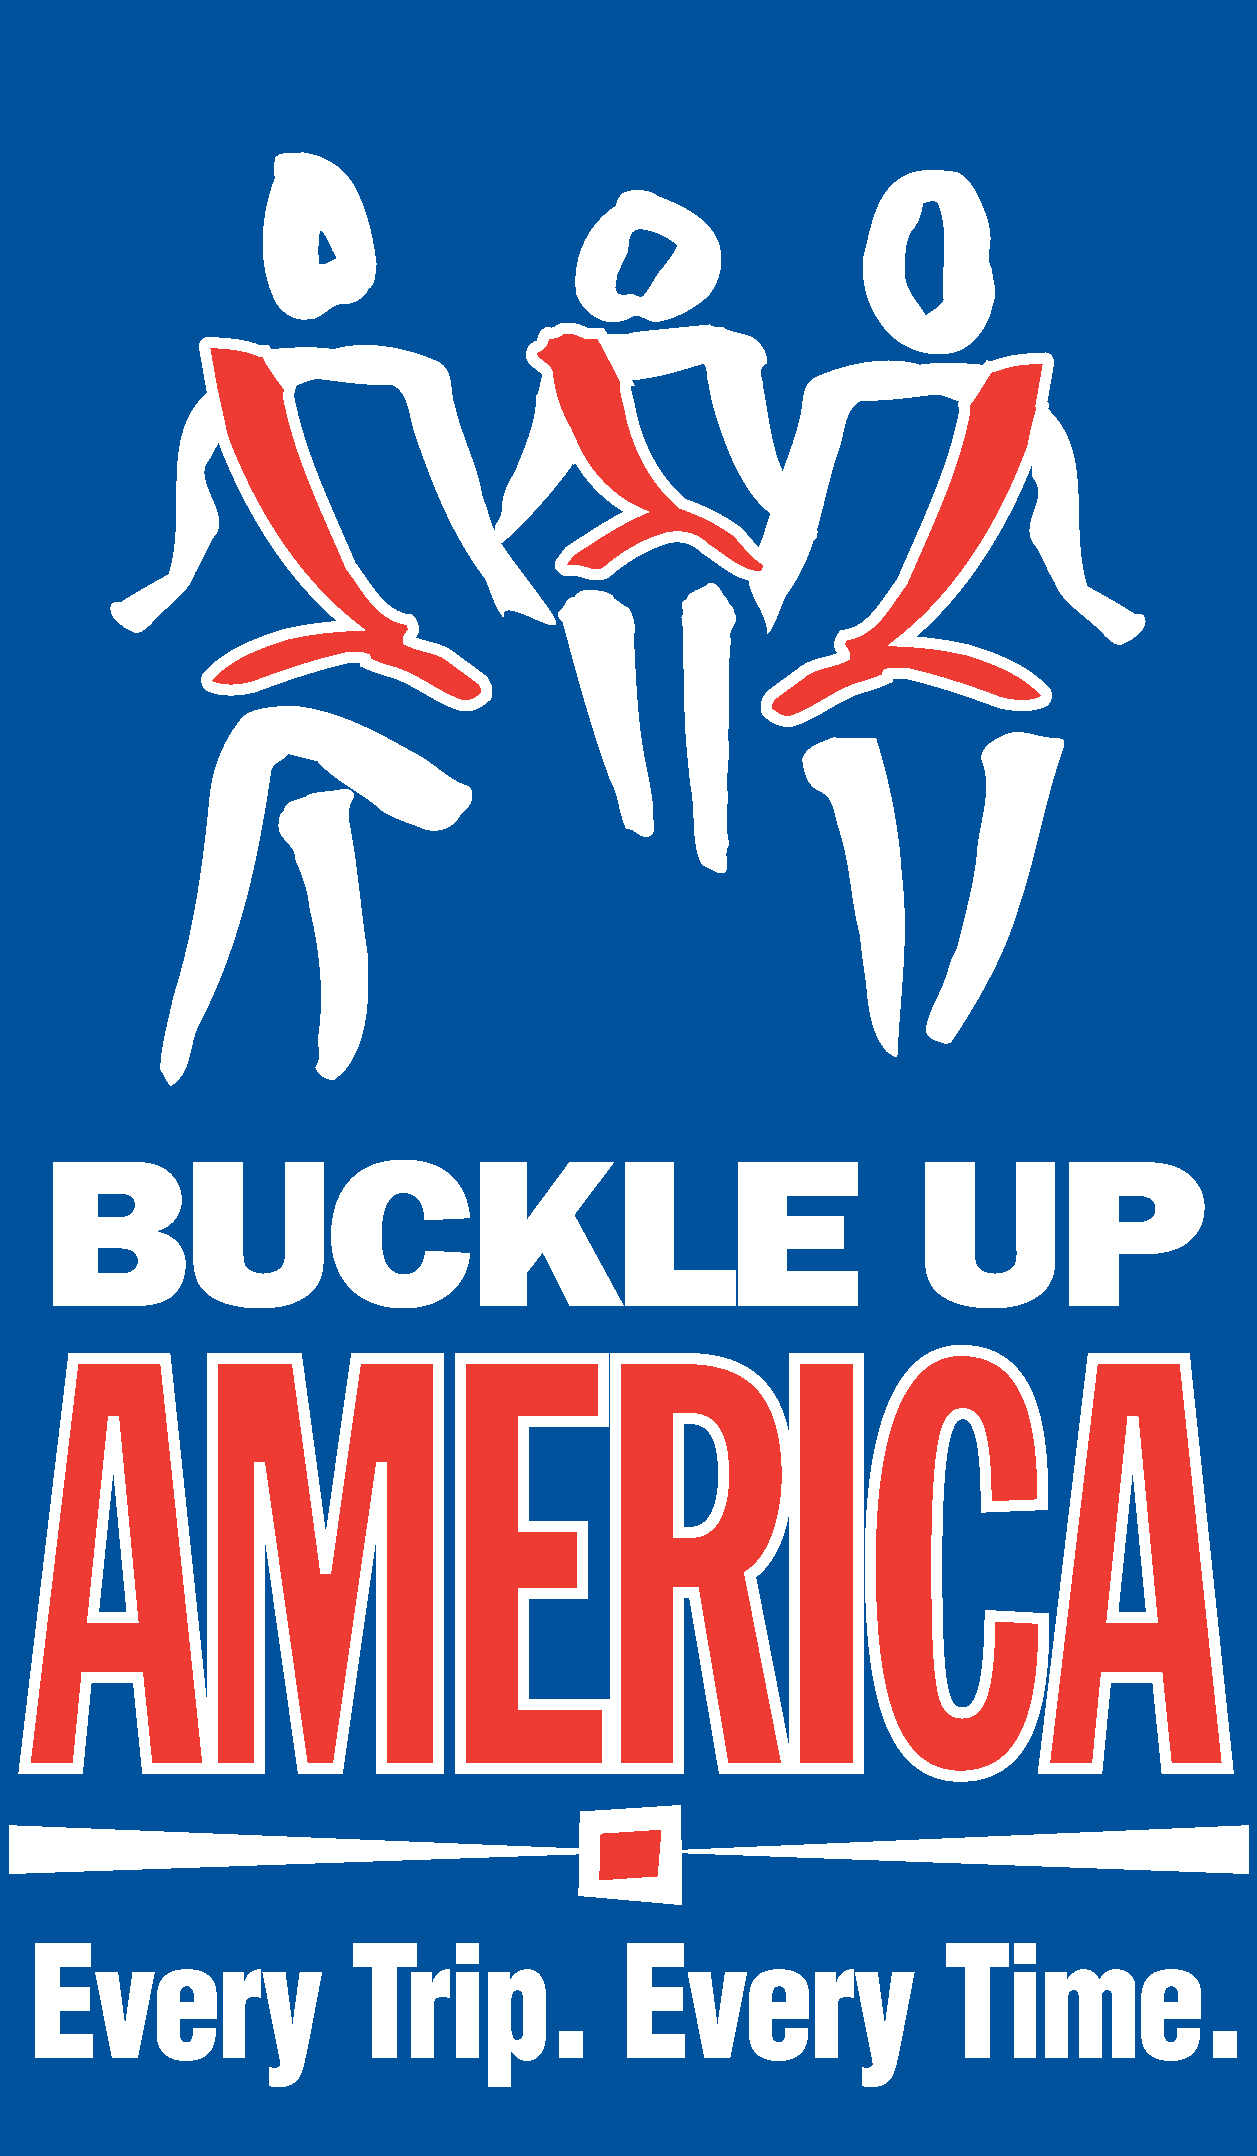 an analysis of buckle up america Analysis: southeast asia's thailand's tourism ministry expects 3755 million tourists this year, up from a record 35 million in 2017 bank of america.